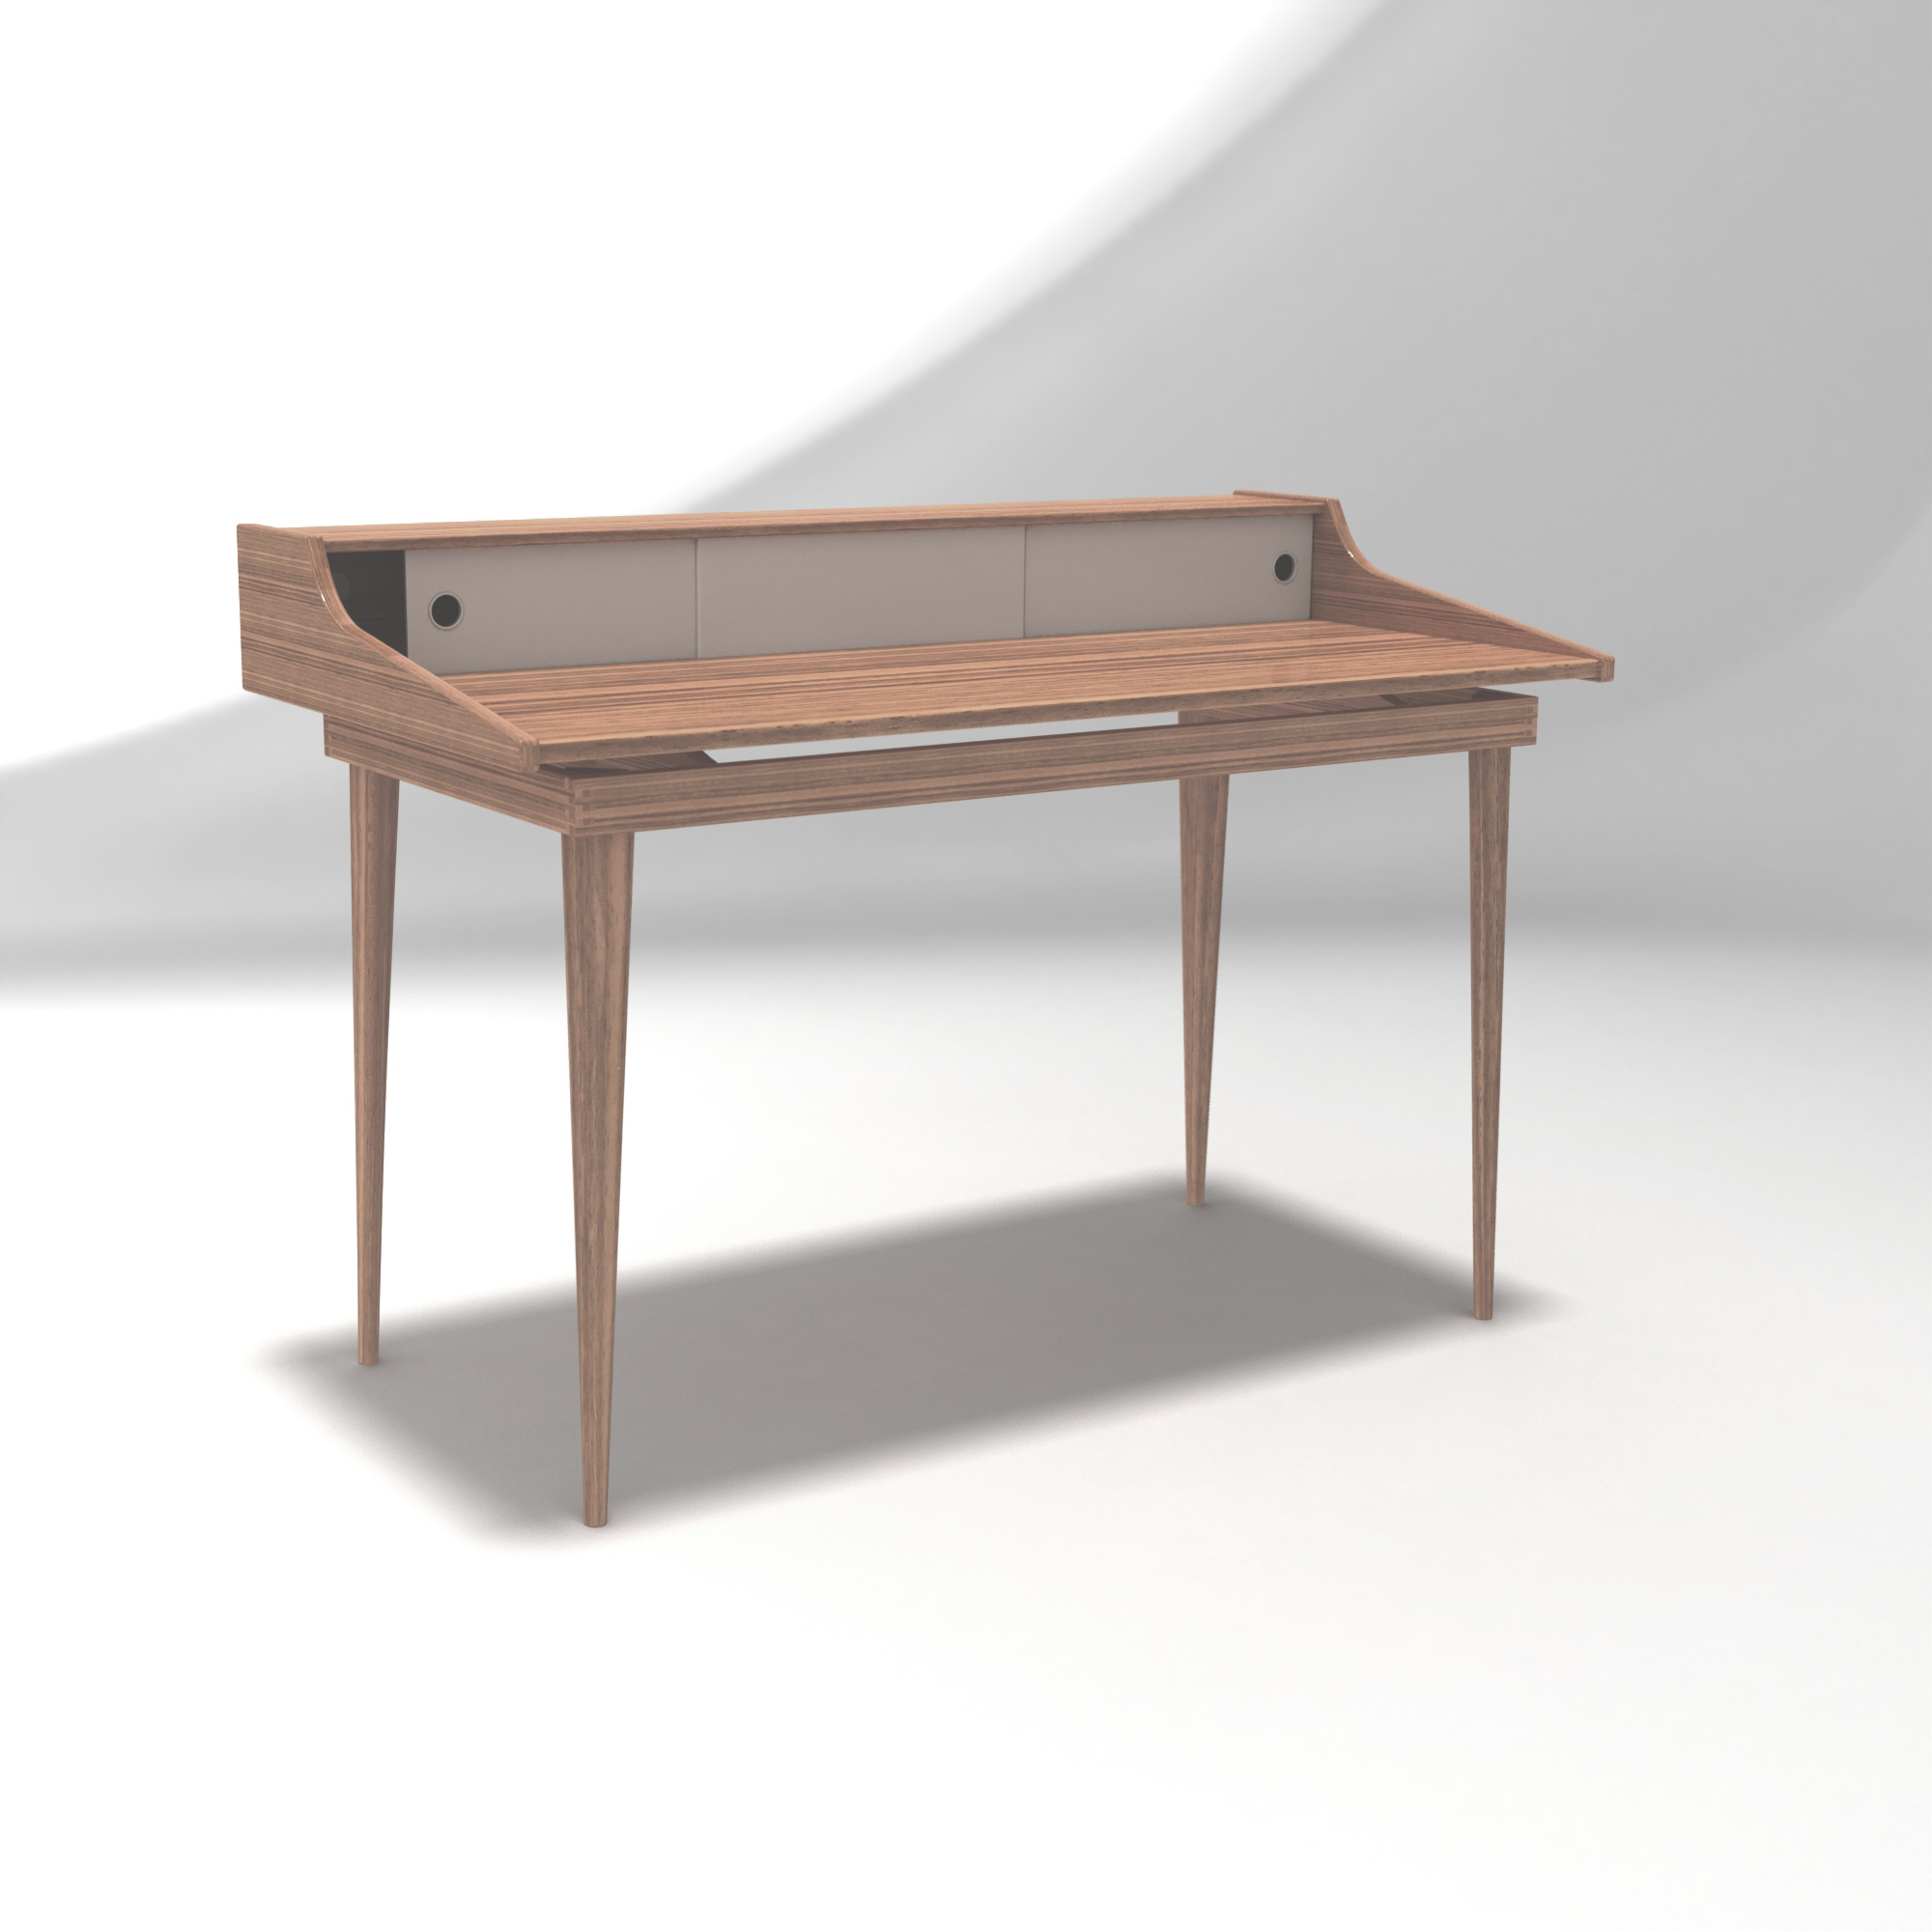 Studio desk with cabinet, made in Solidworks, by Sebastian Galo